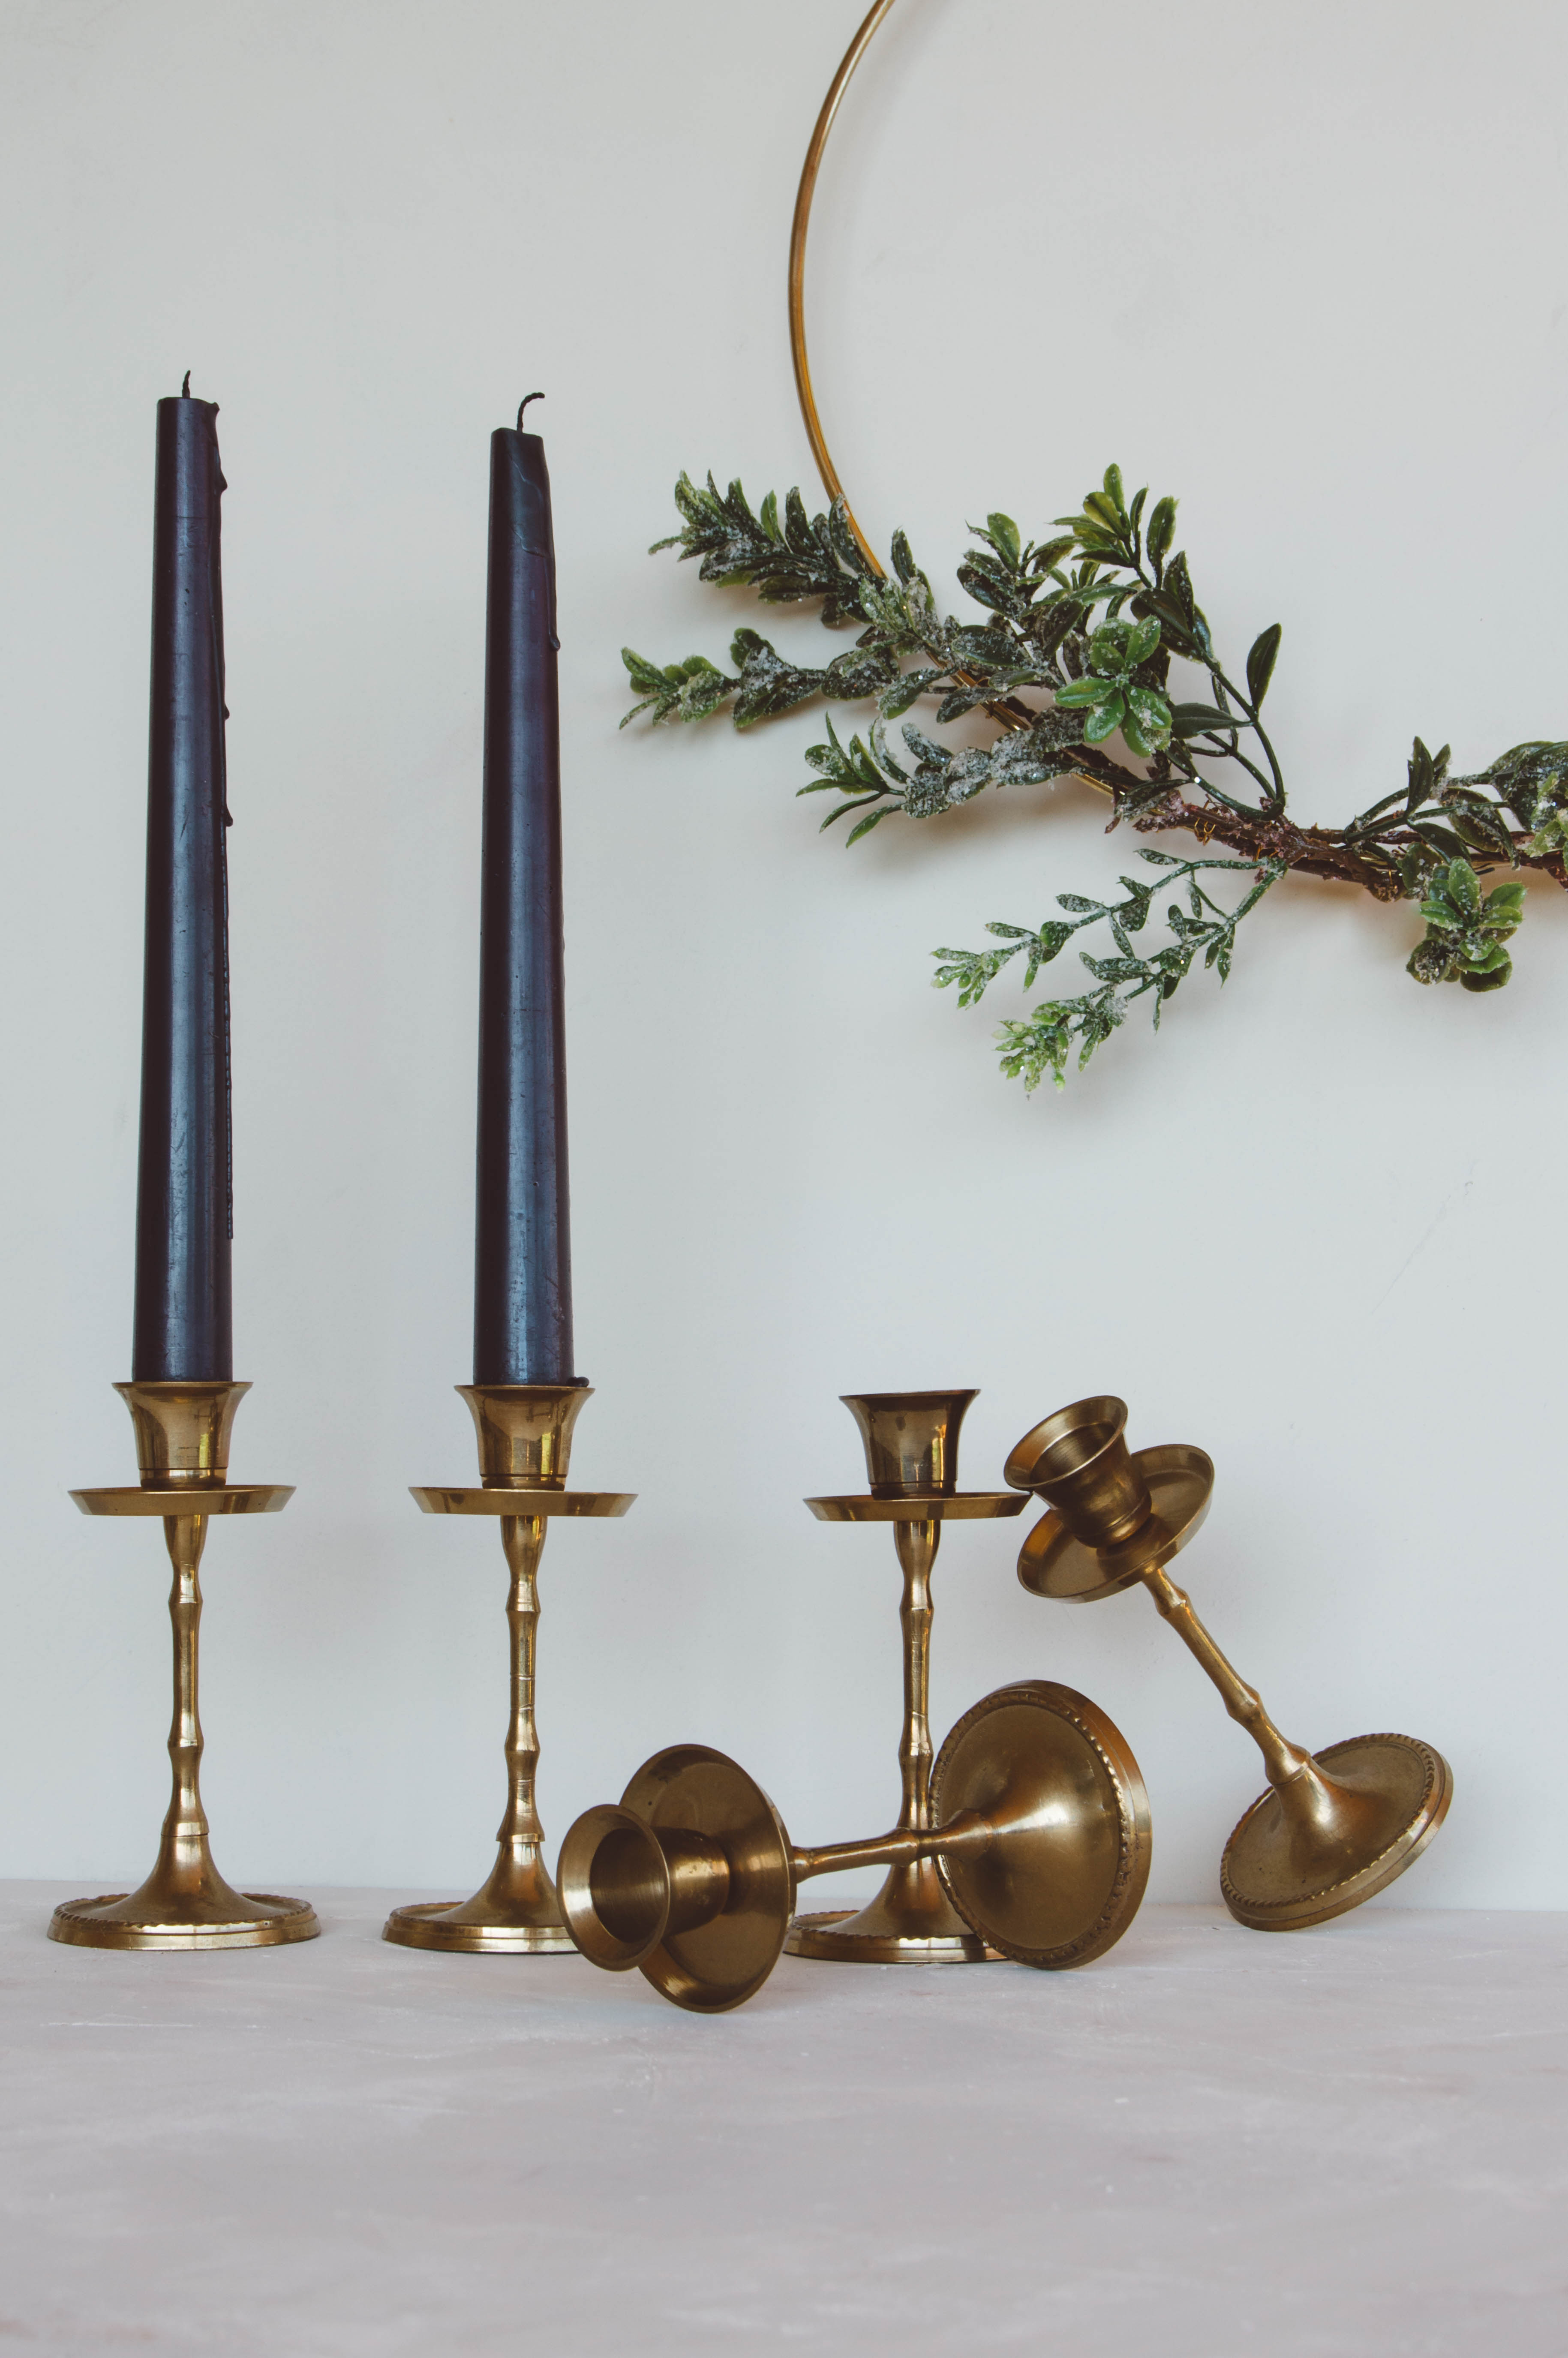 Brass candlestick holders, easy shop, vintage candleholders, faux bamboo candlestick holders